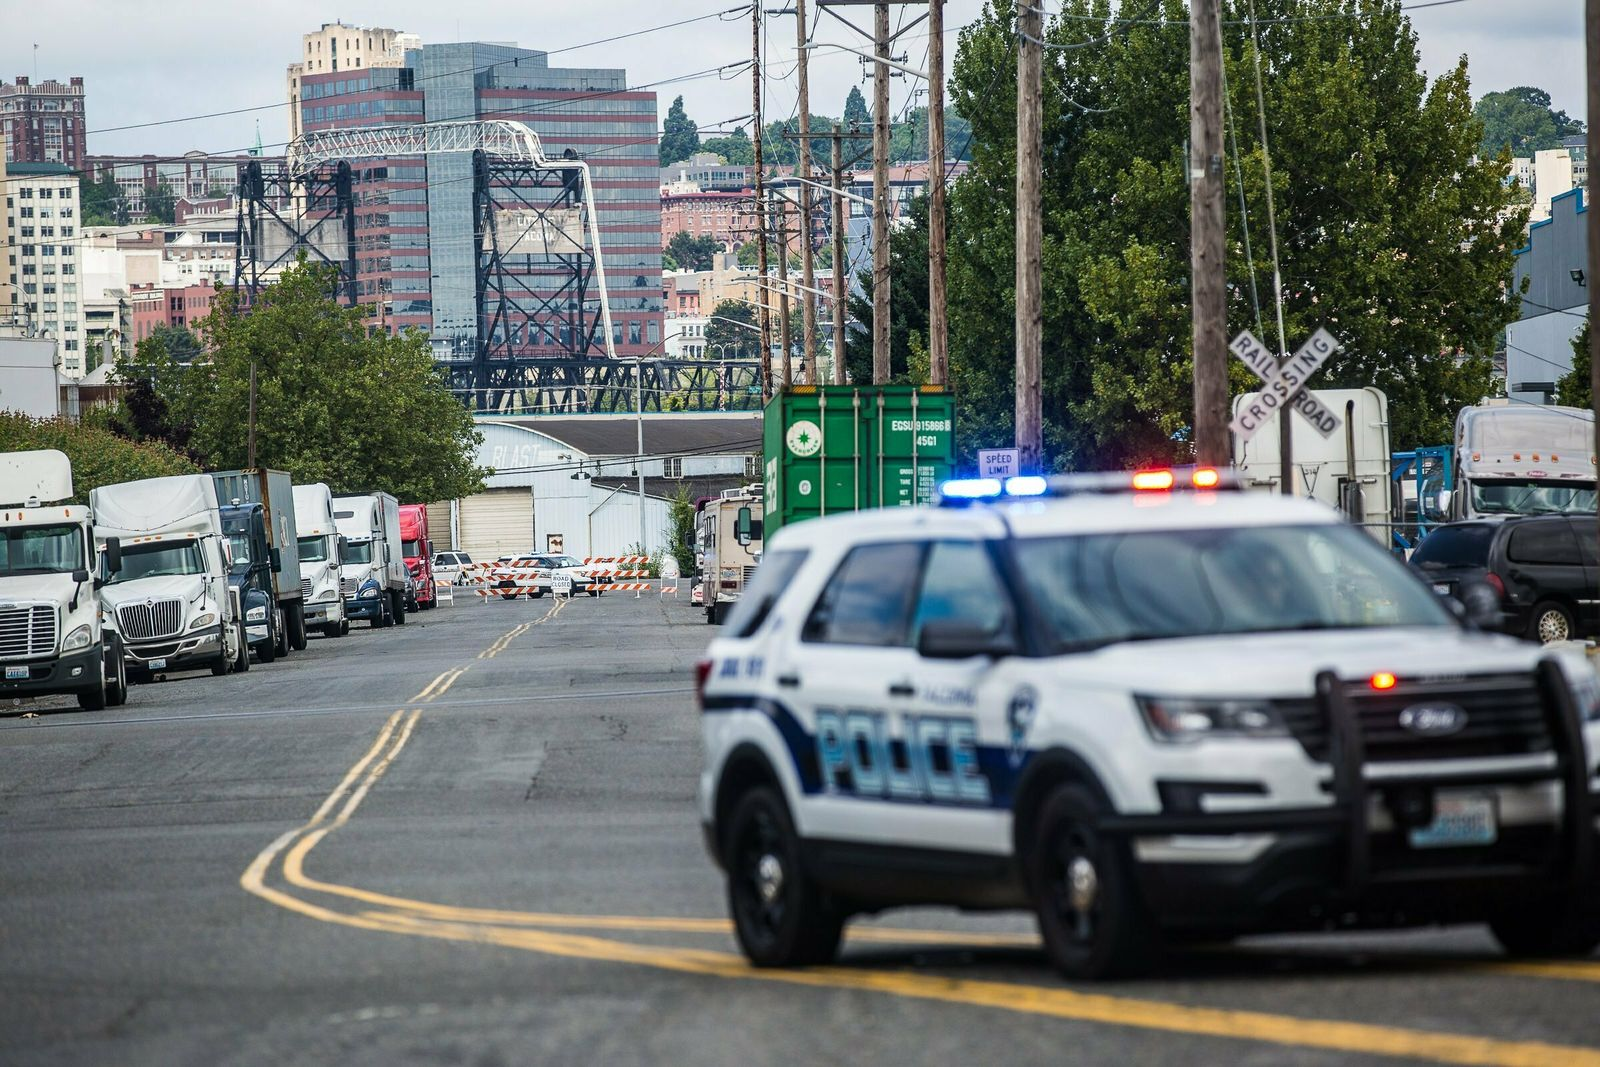 A police officer guards the front of a road block near the Northwest Detention Center, Saturday, July 13, 2019 in Tacoma, Wash.{ } (Rebekah Welch/The Seattle Times via AP)